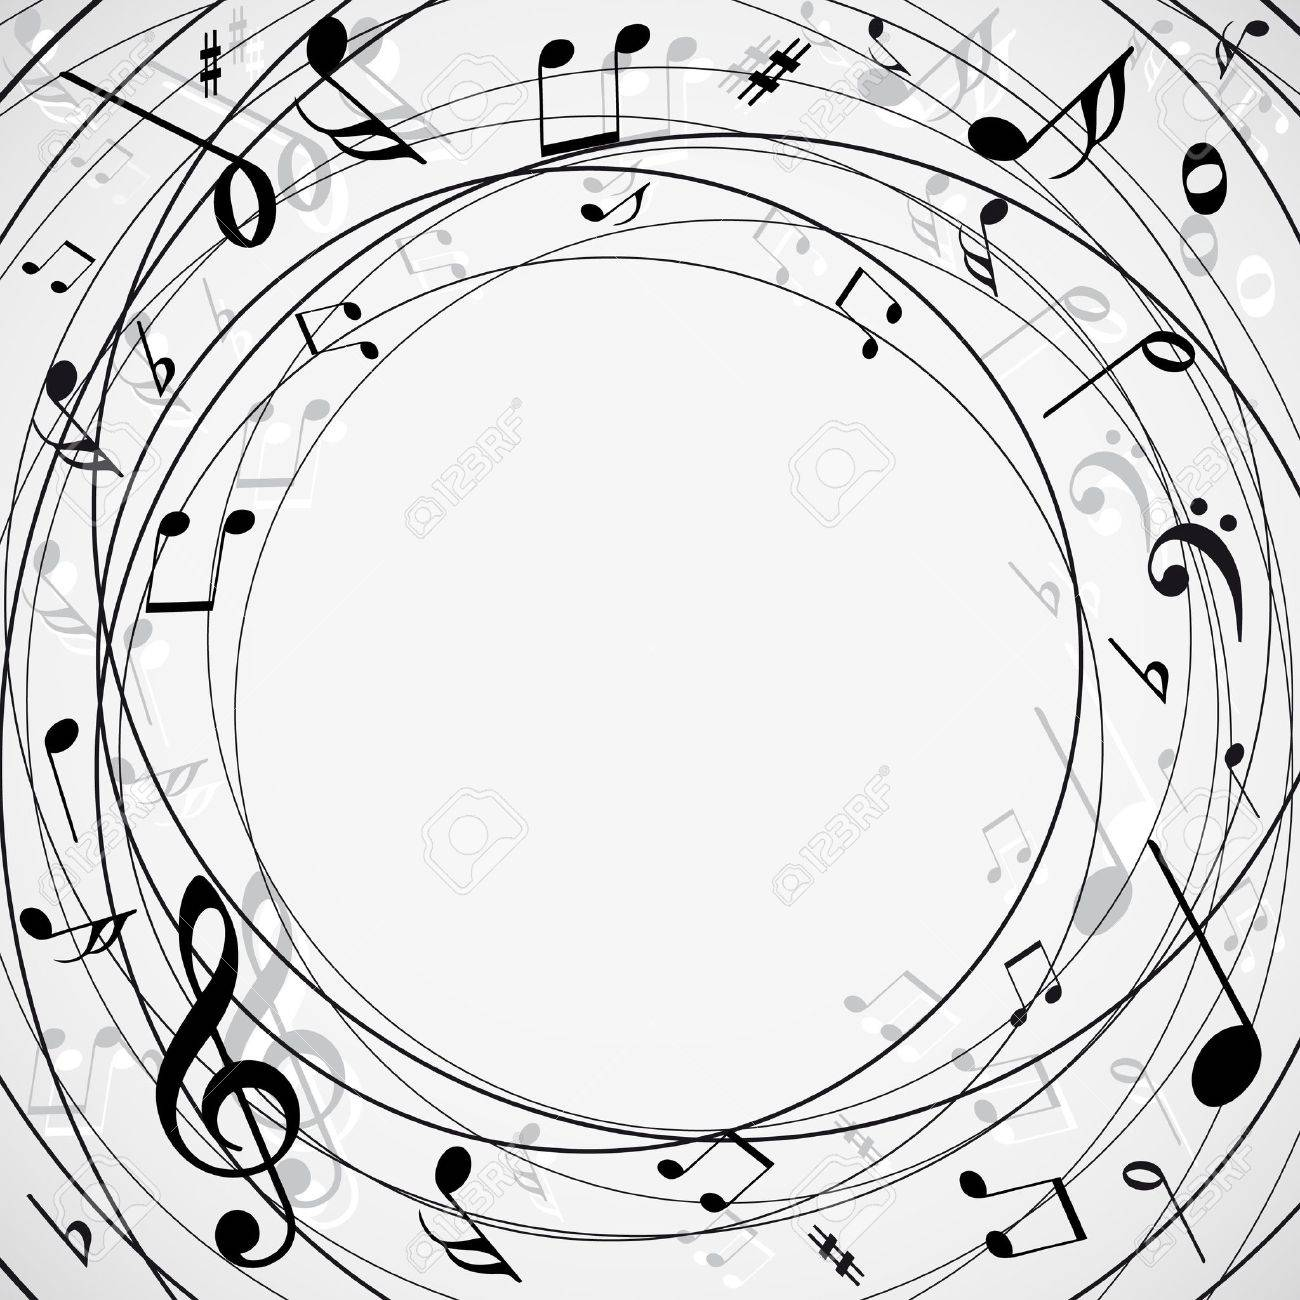 Musical notes staff background on white vector by tassel78 image - Musical Note Musical Notes Background